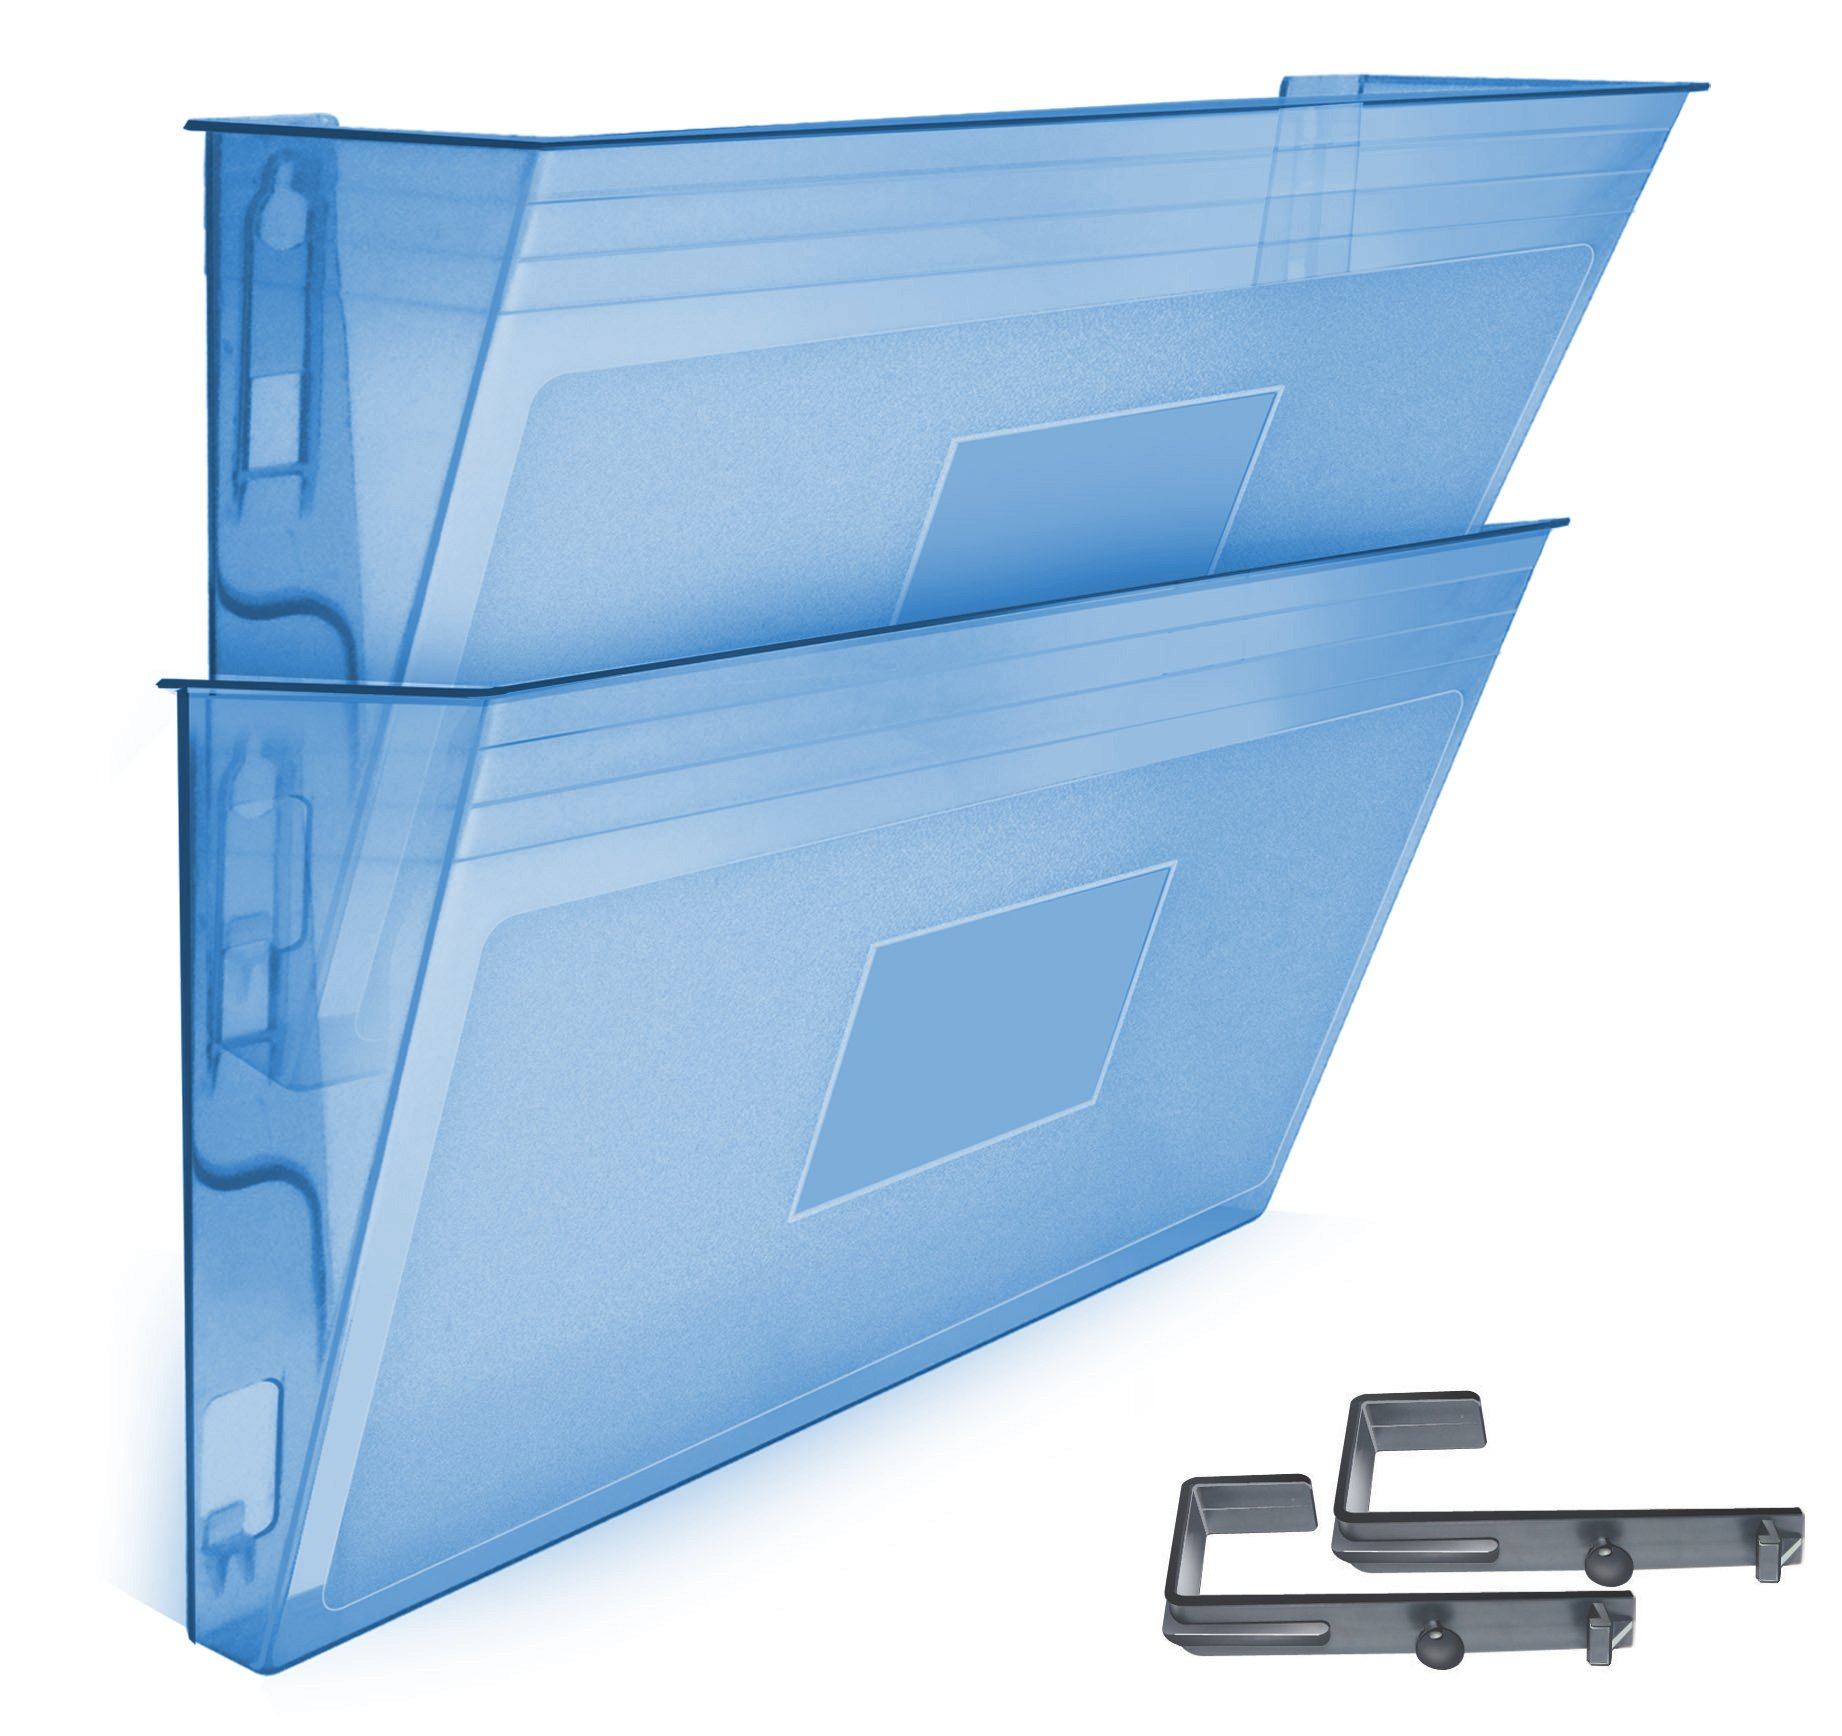 Acrimet Wall-mounted Modular File Holder (2 - Pack) (Clear Blue Color)